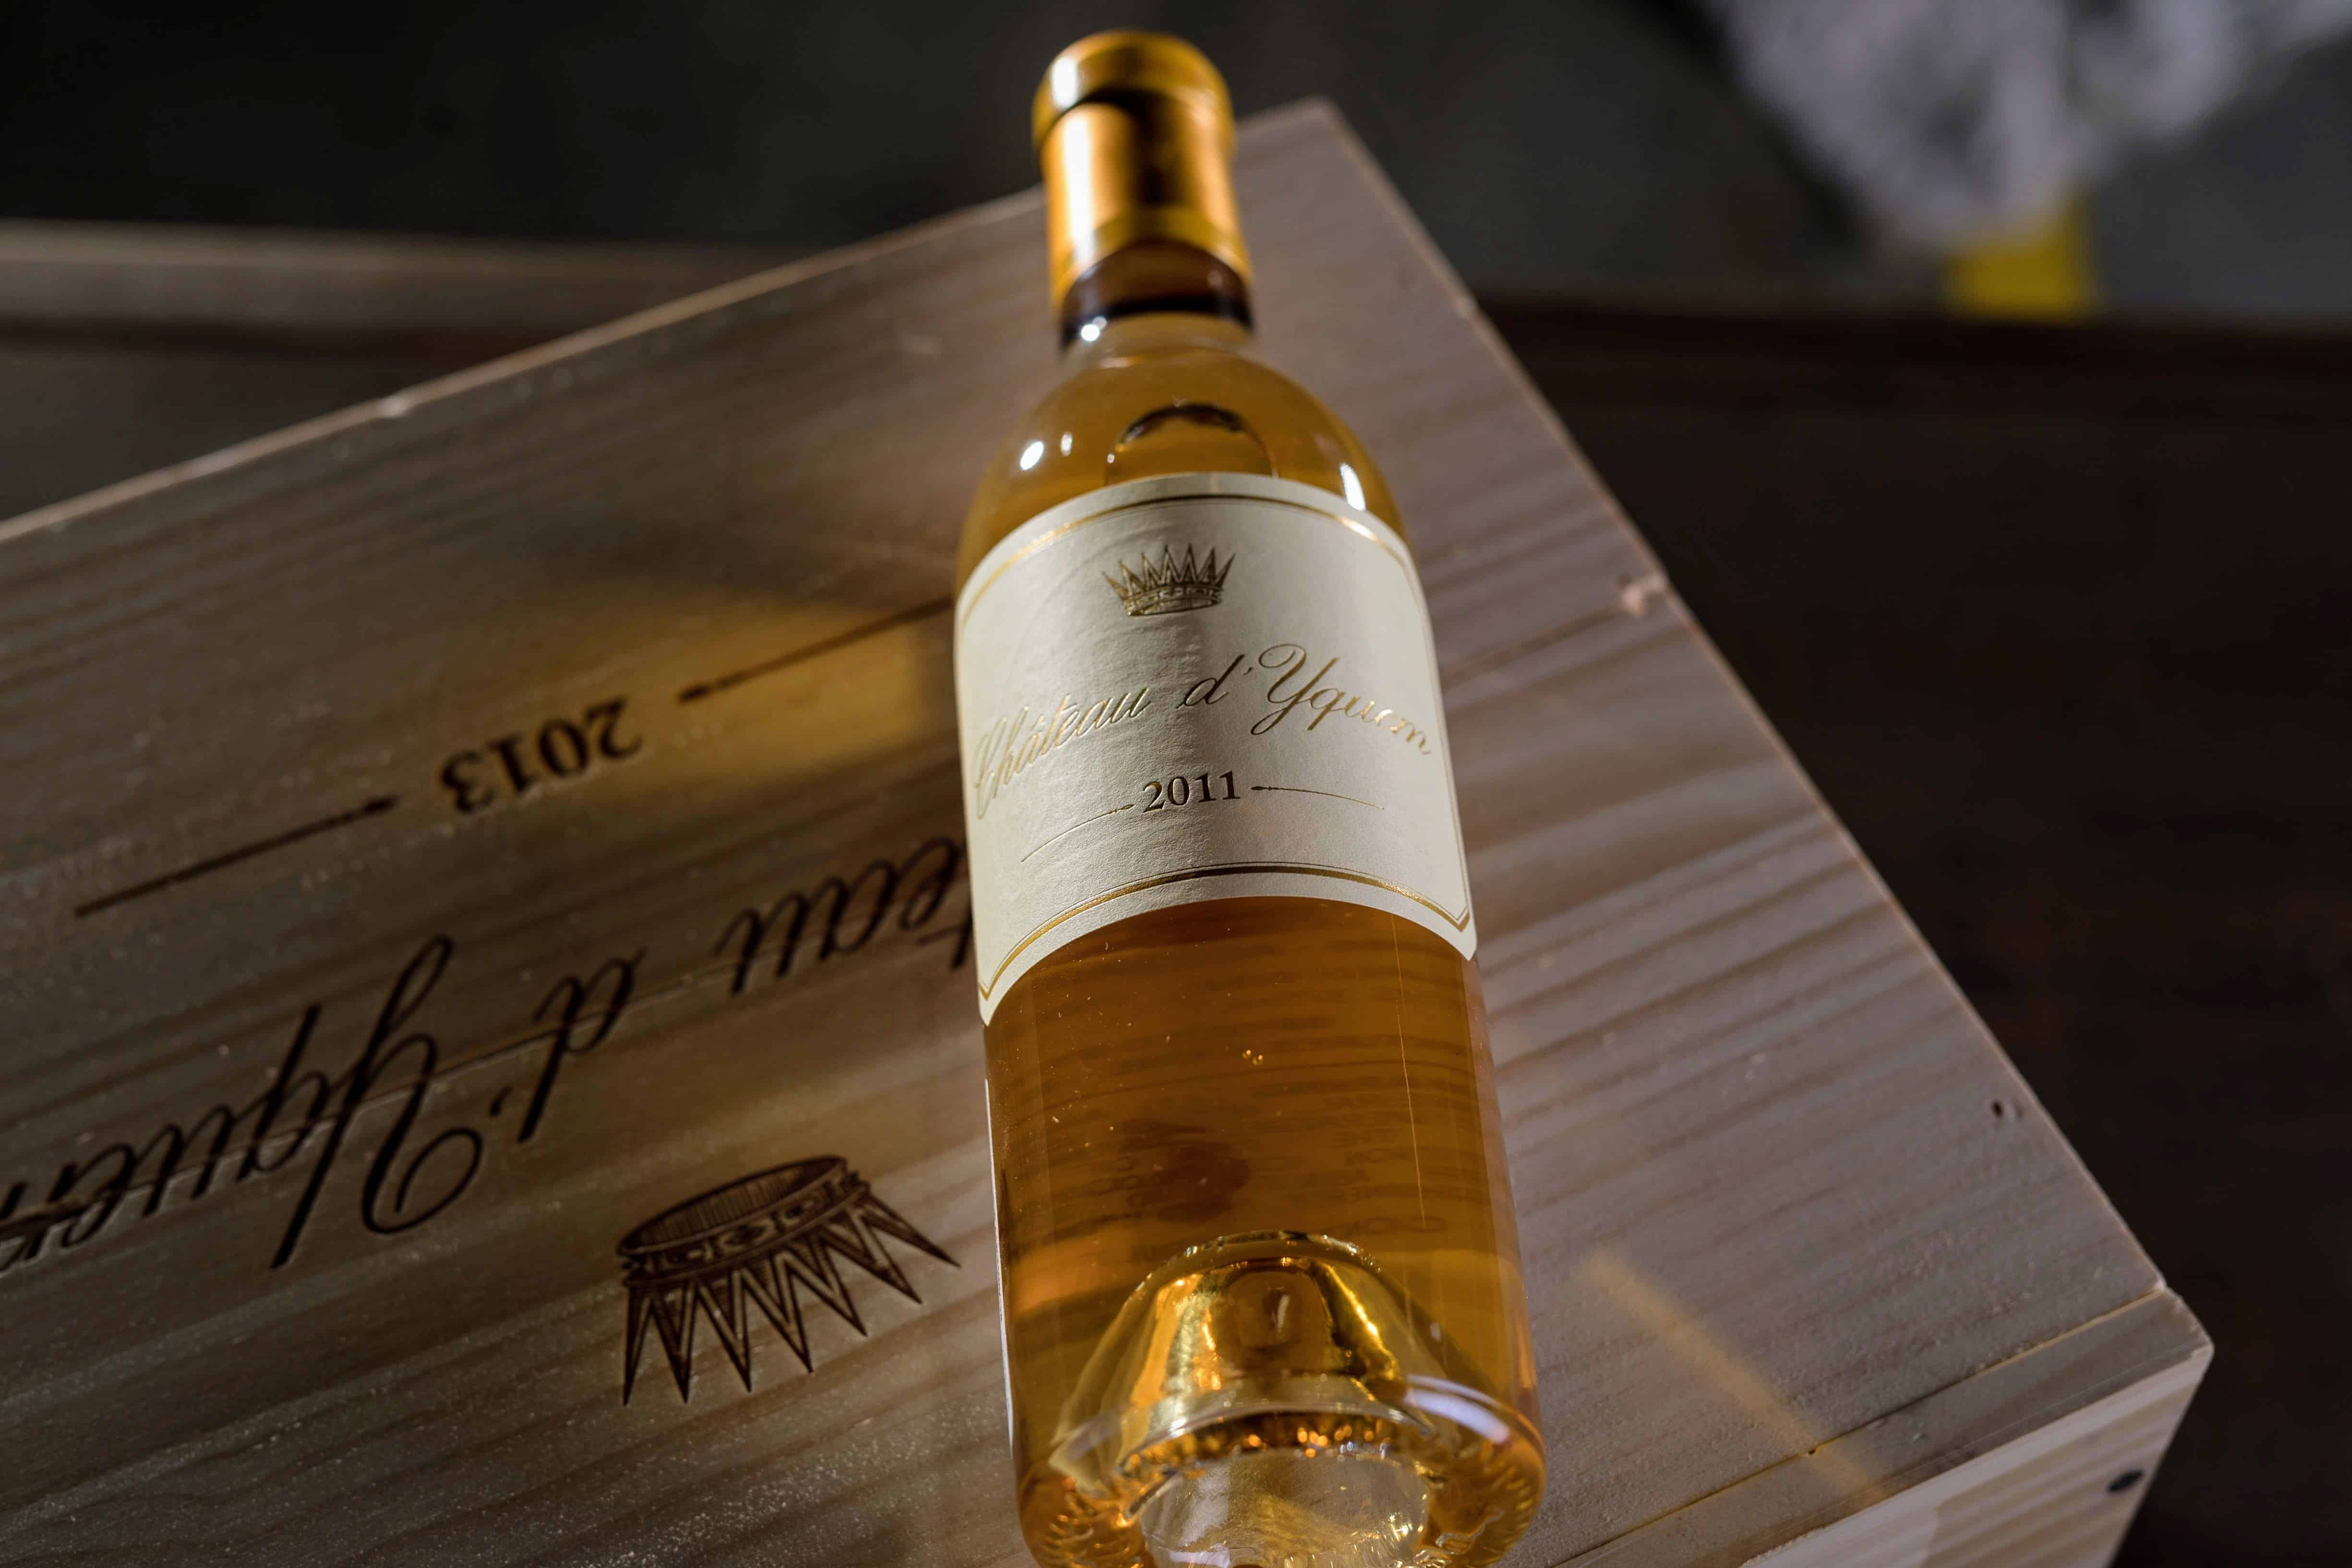 Decanting Château d'Yquem isn't common but it can be beneficial.